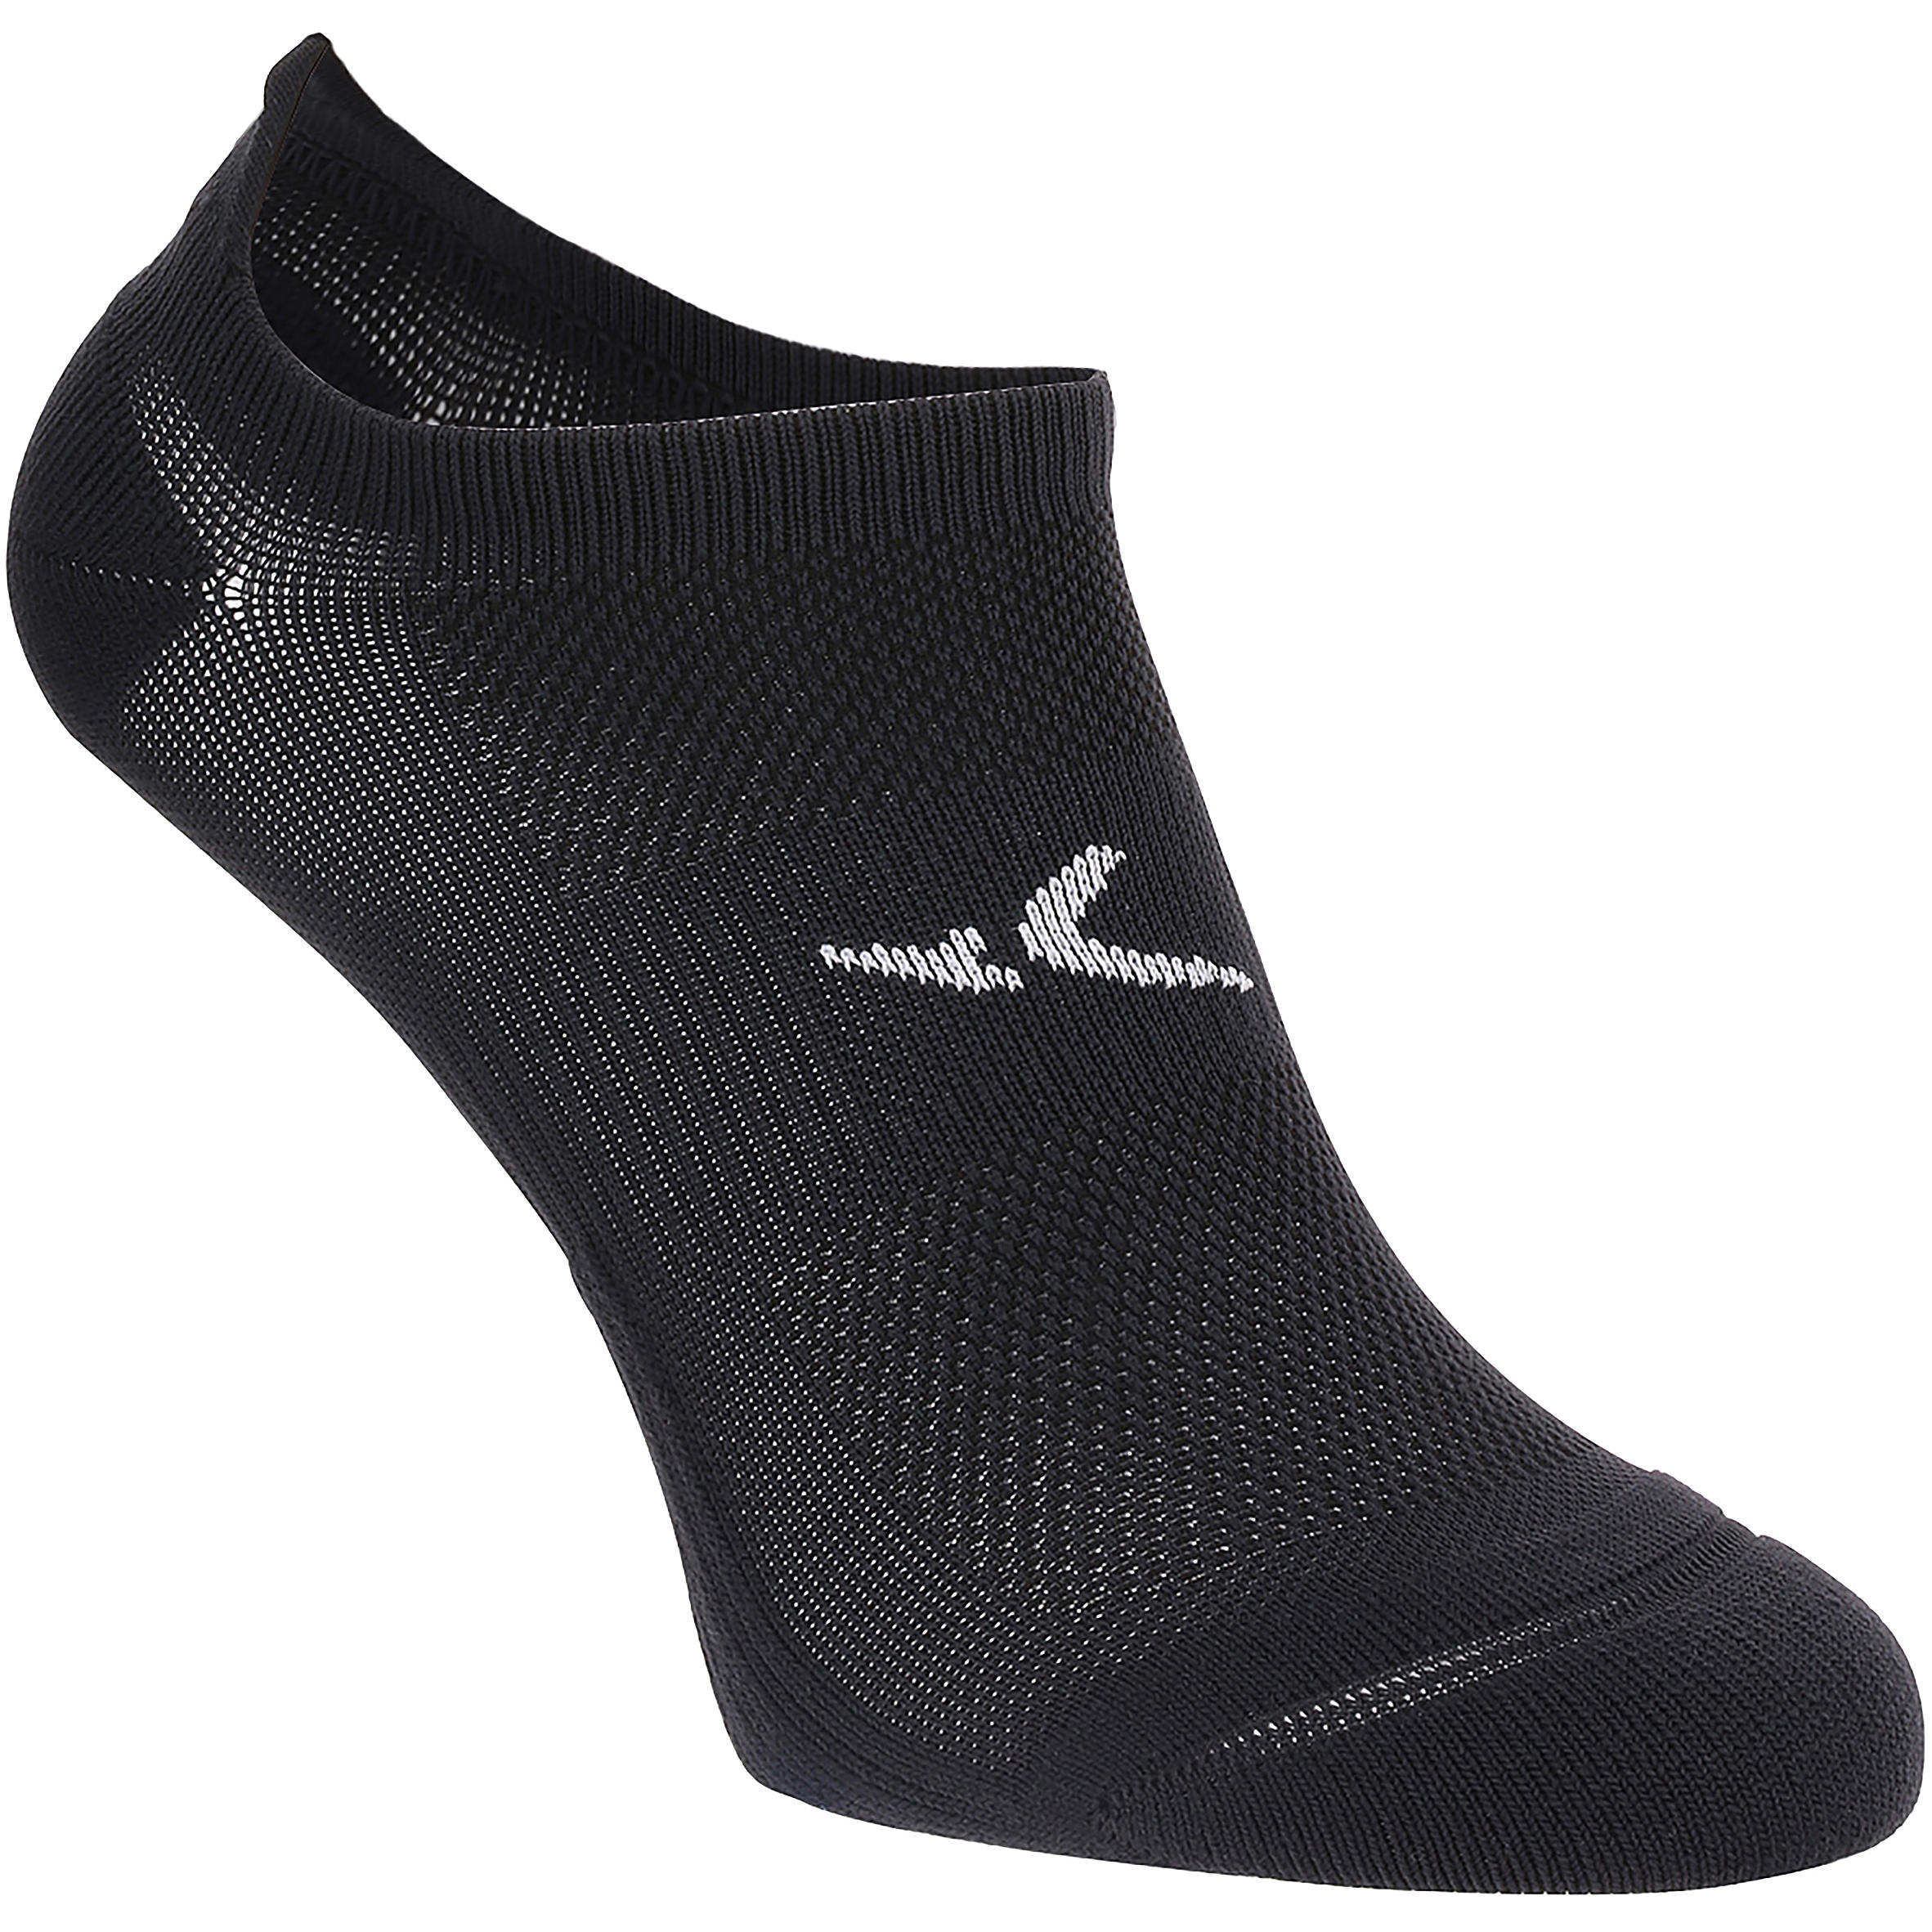 Calcetines invisibles fitness x2 negro